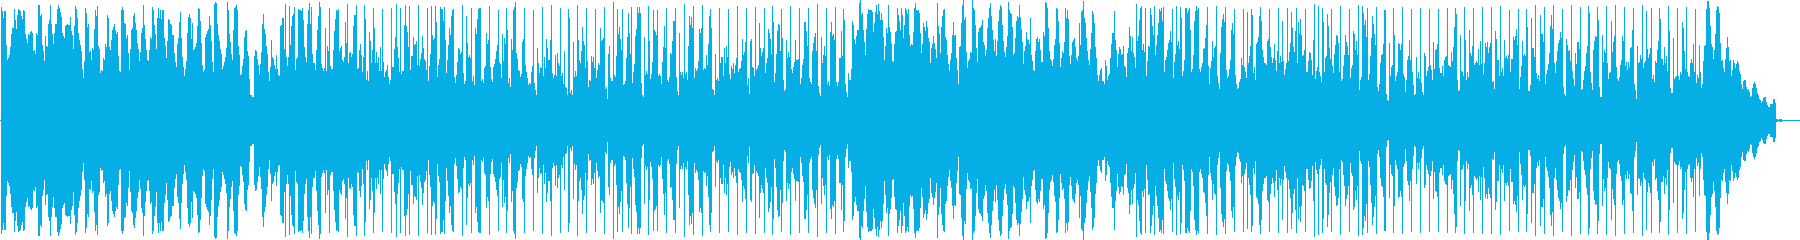 Bossa nova music with beautiful tones's reproduced waveform